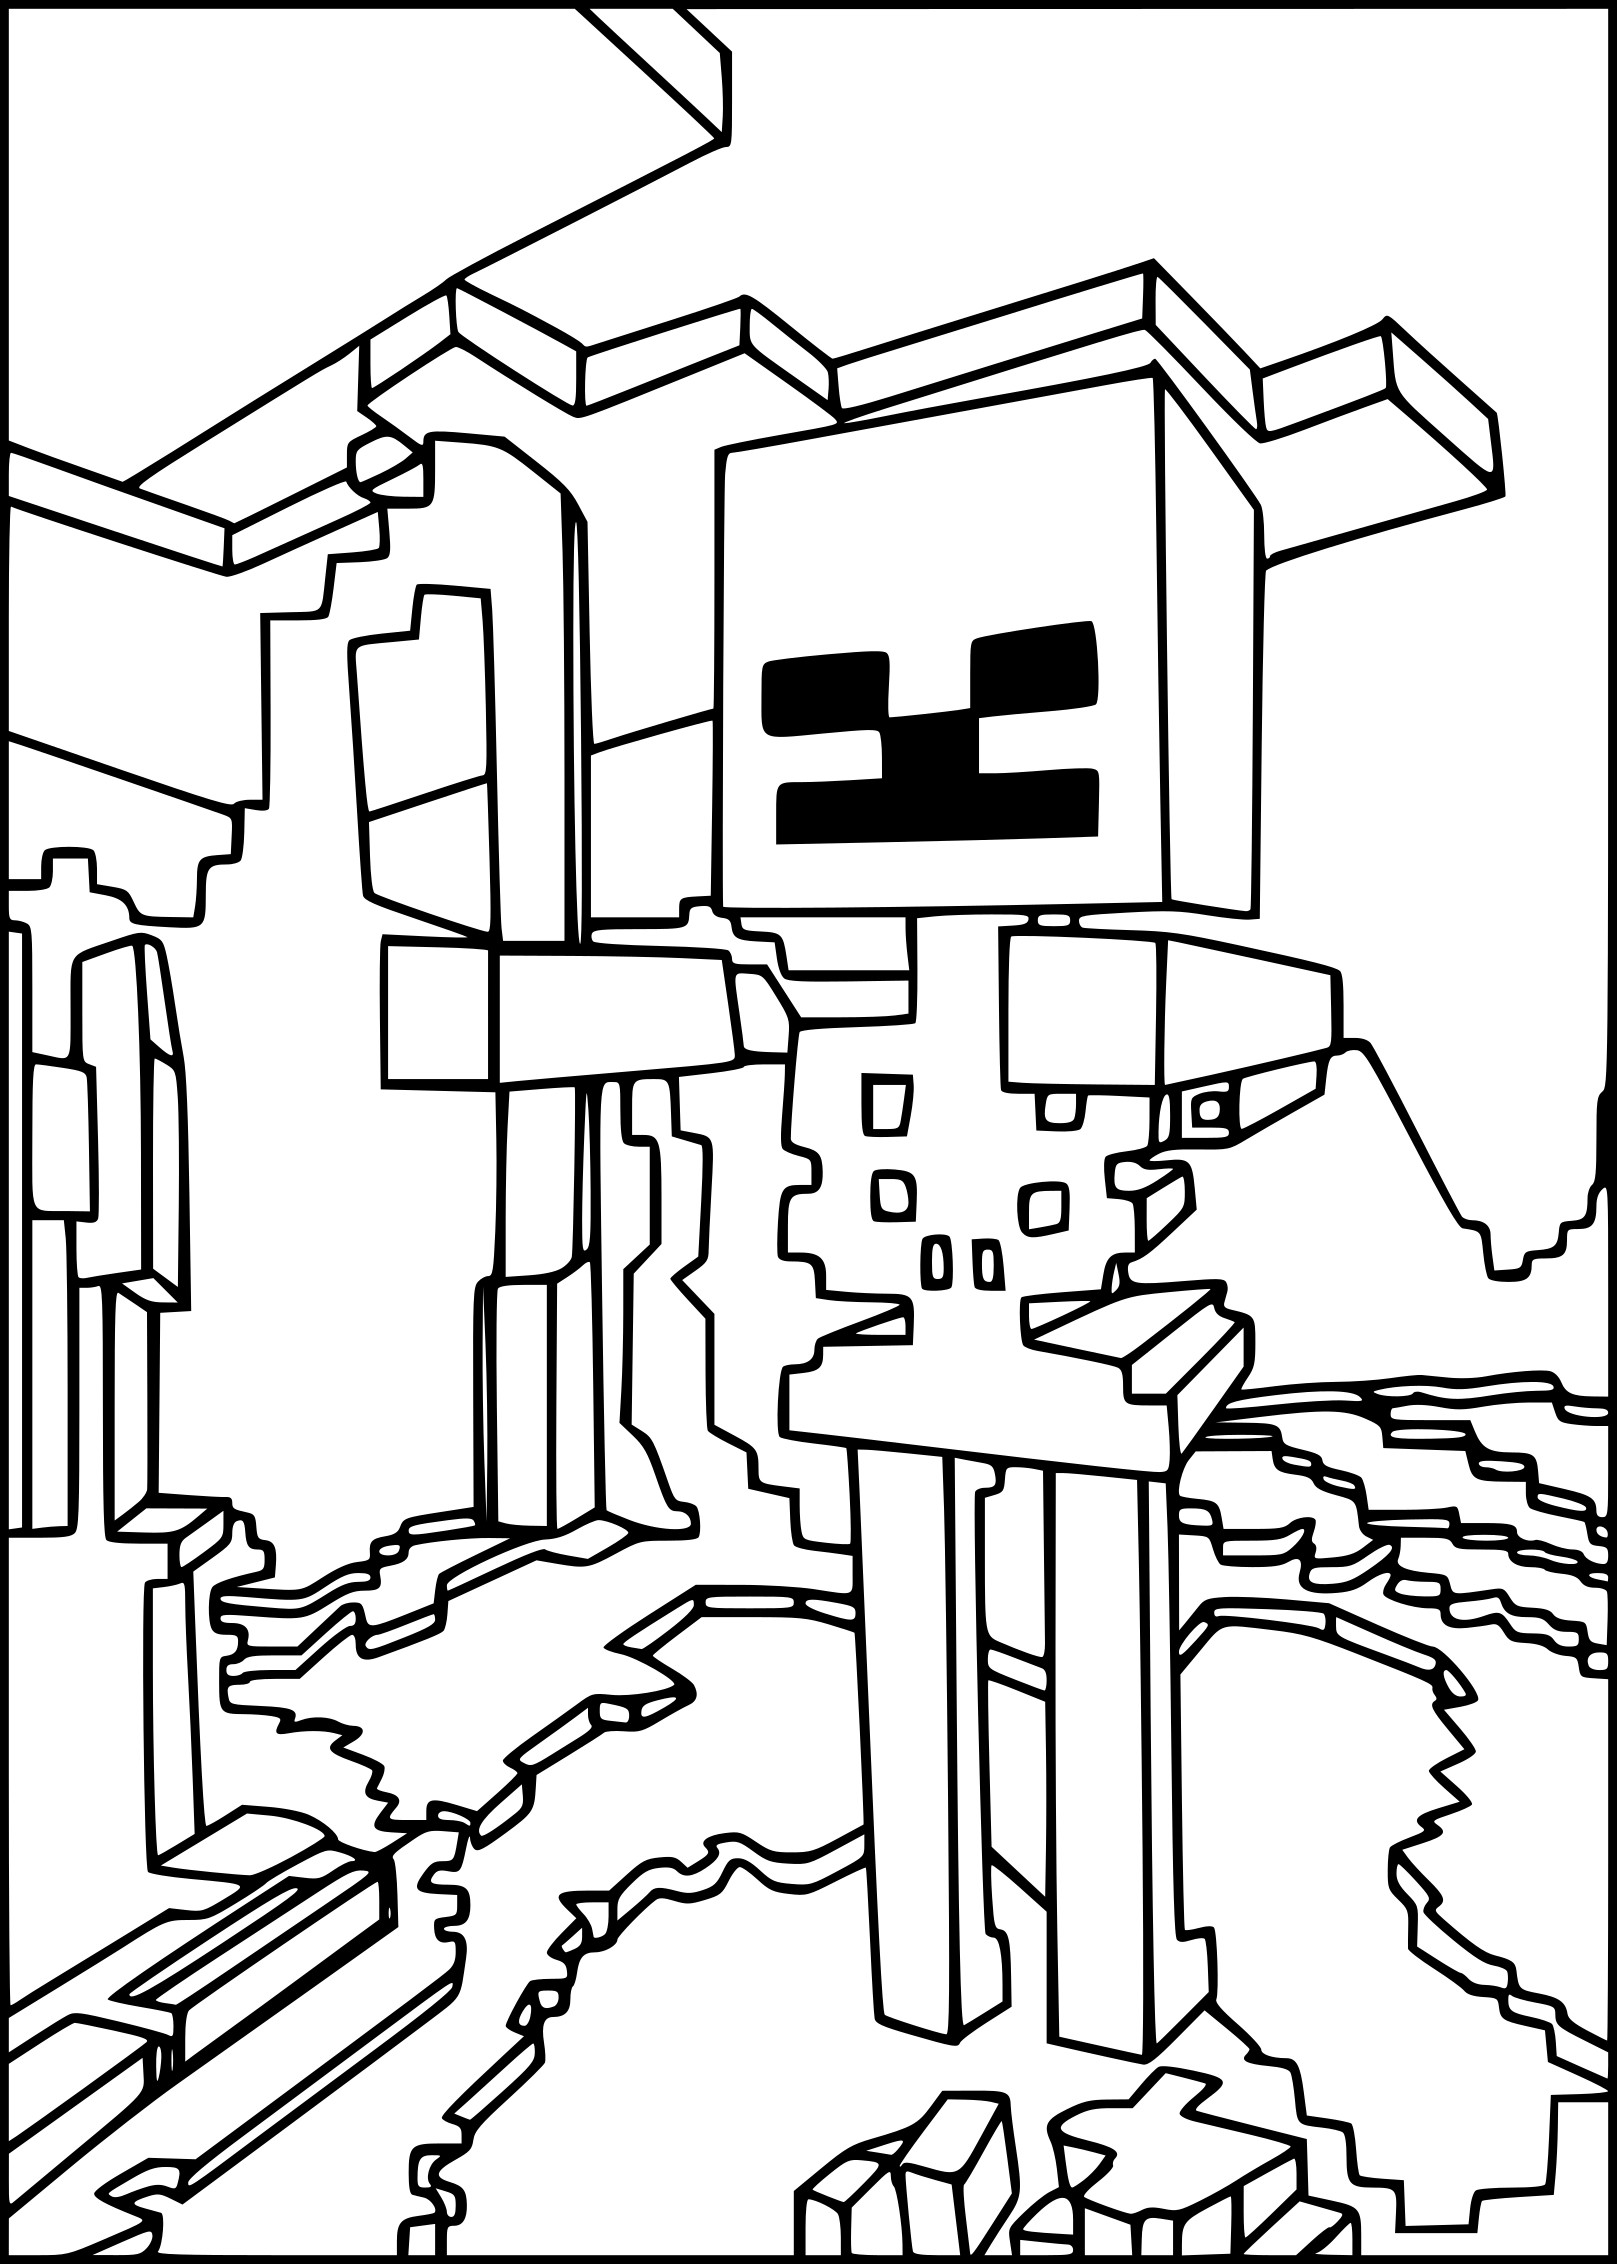 Coloriage squelette minecraft imprimer for Minecraft mutant creeper coloring pages